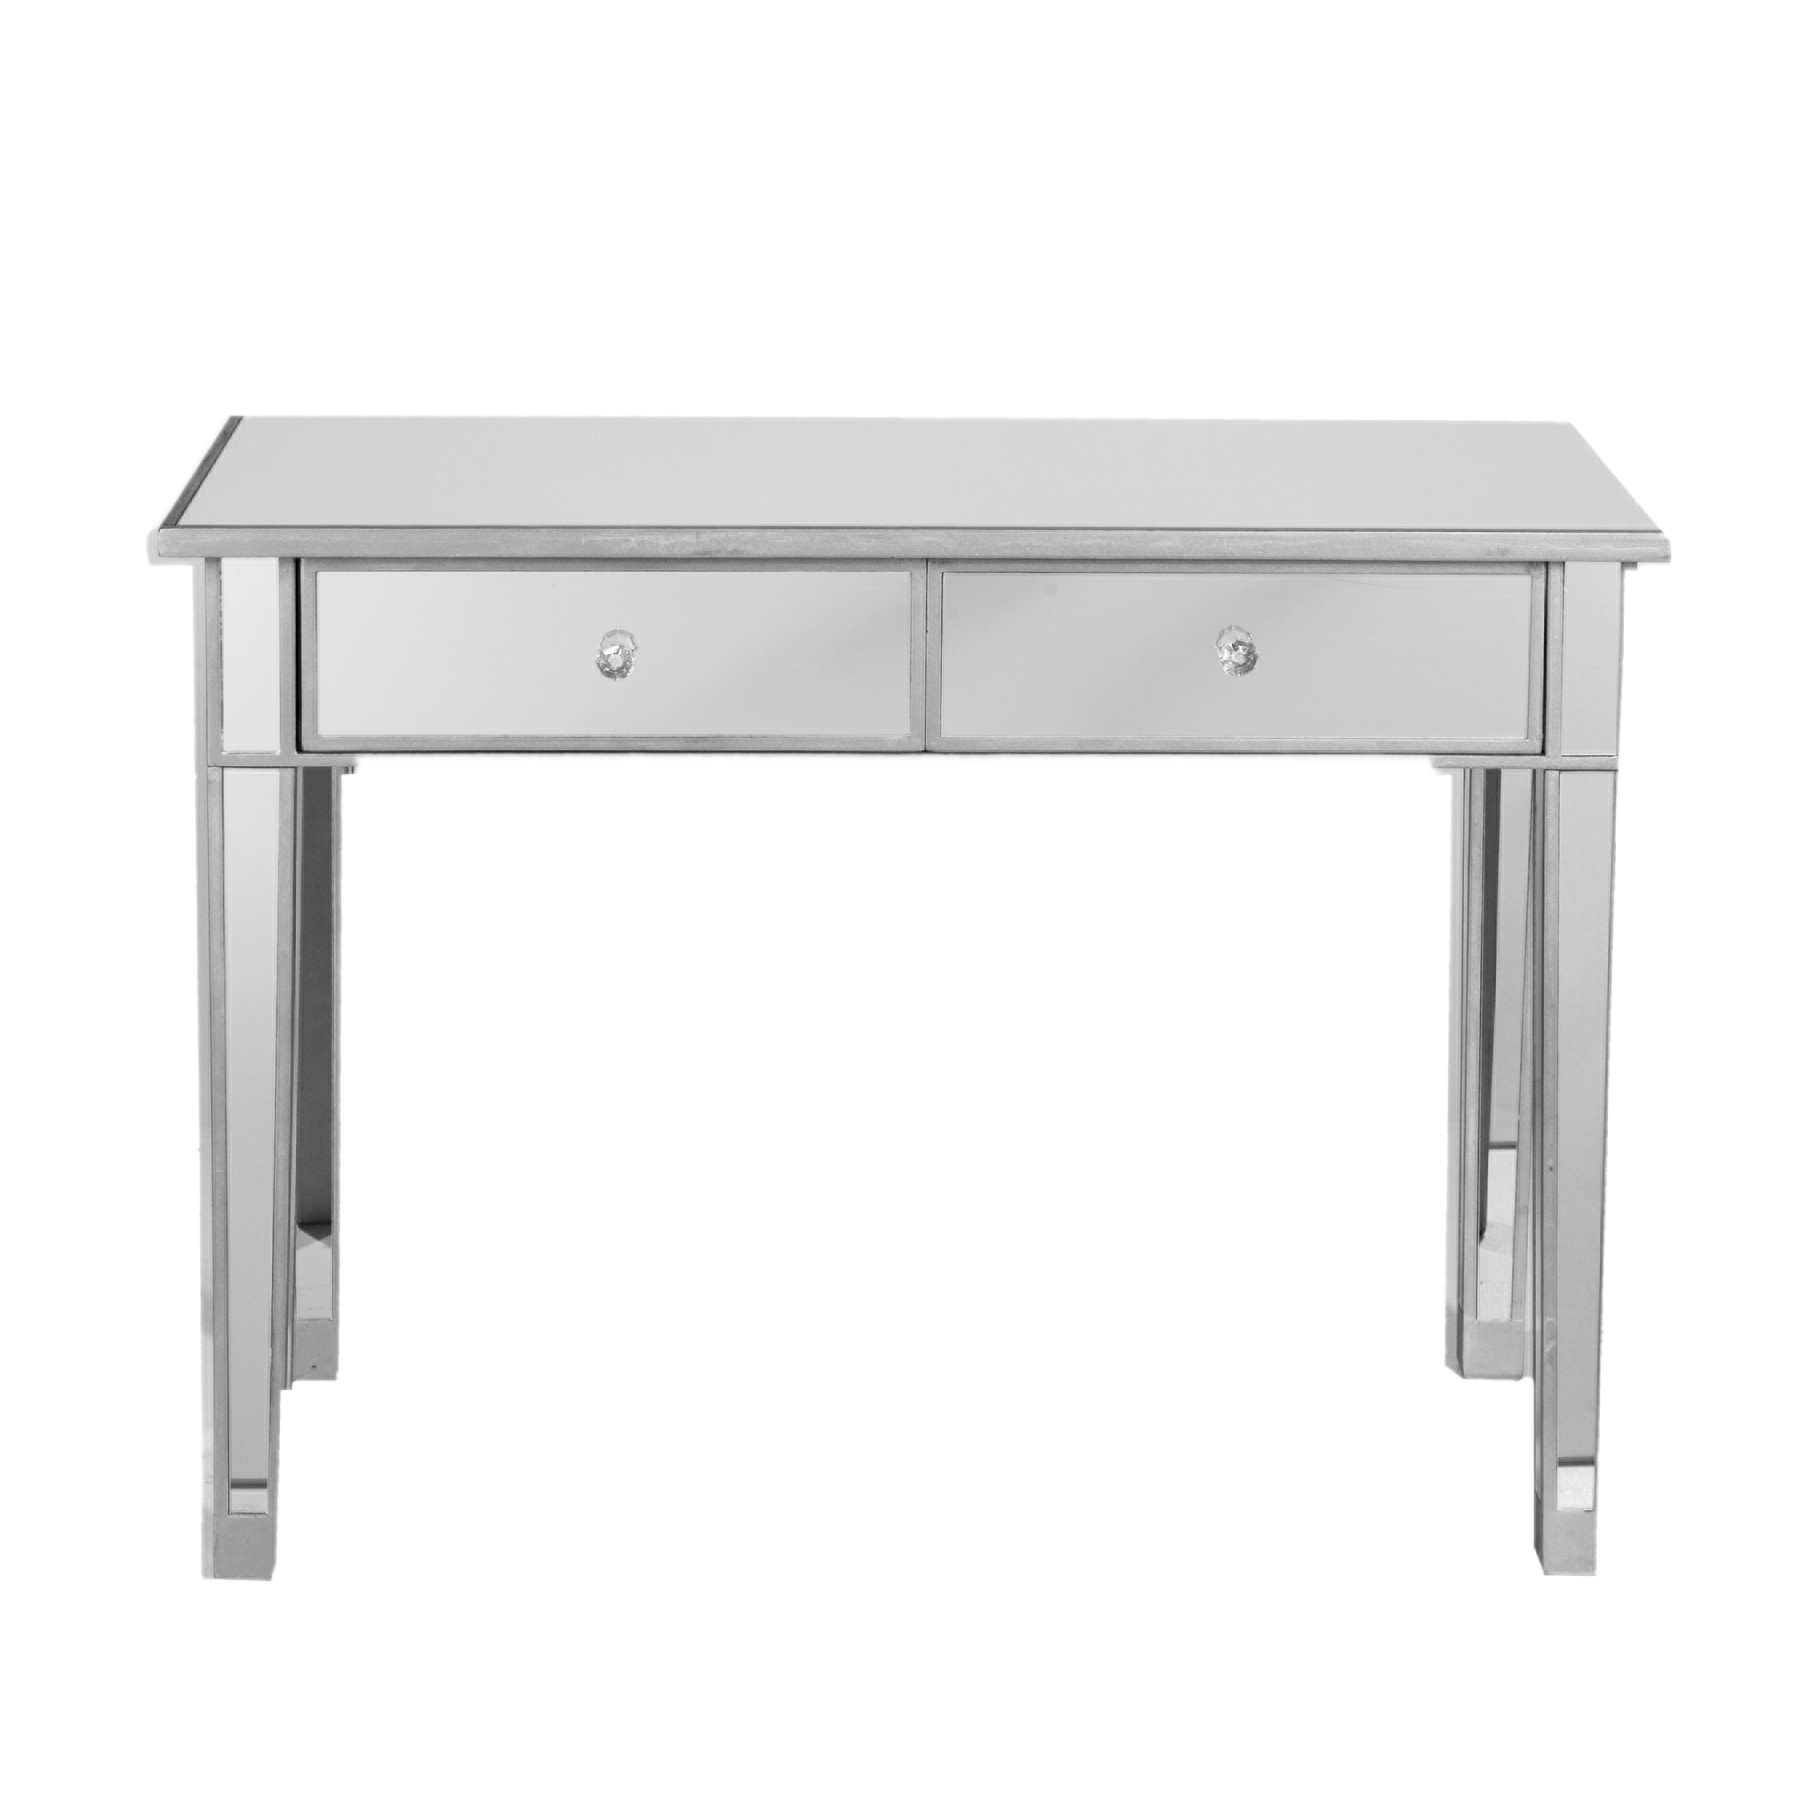 Southern Enterprises Illusions Collection Mirrored Console Table/Desk